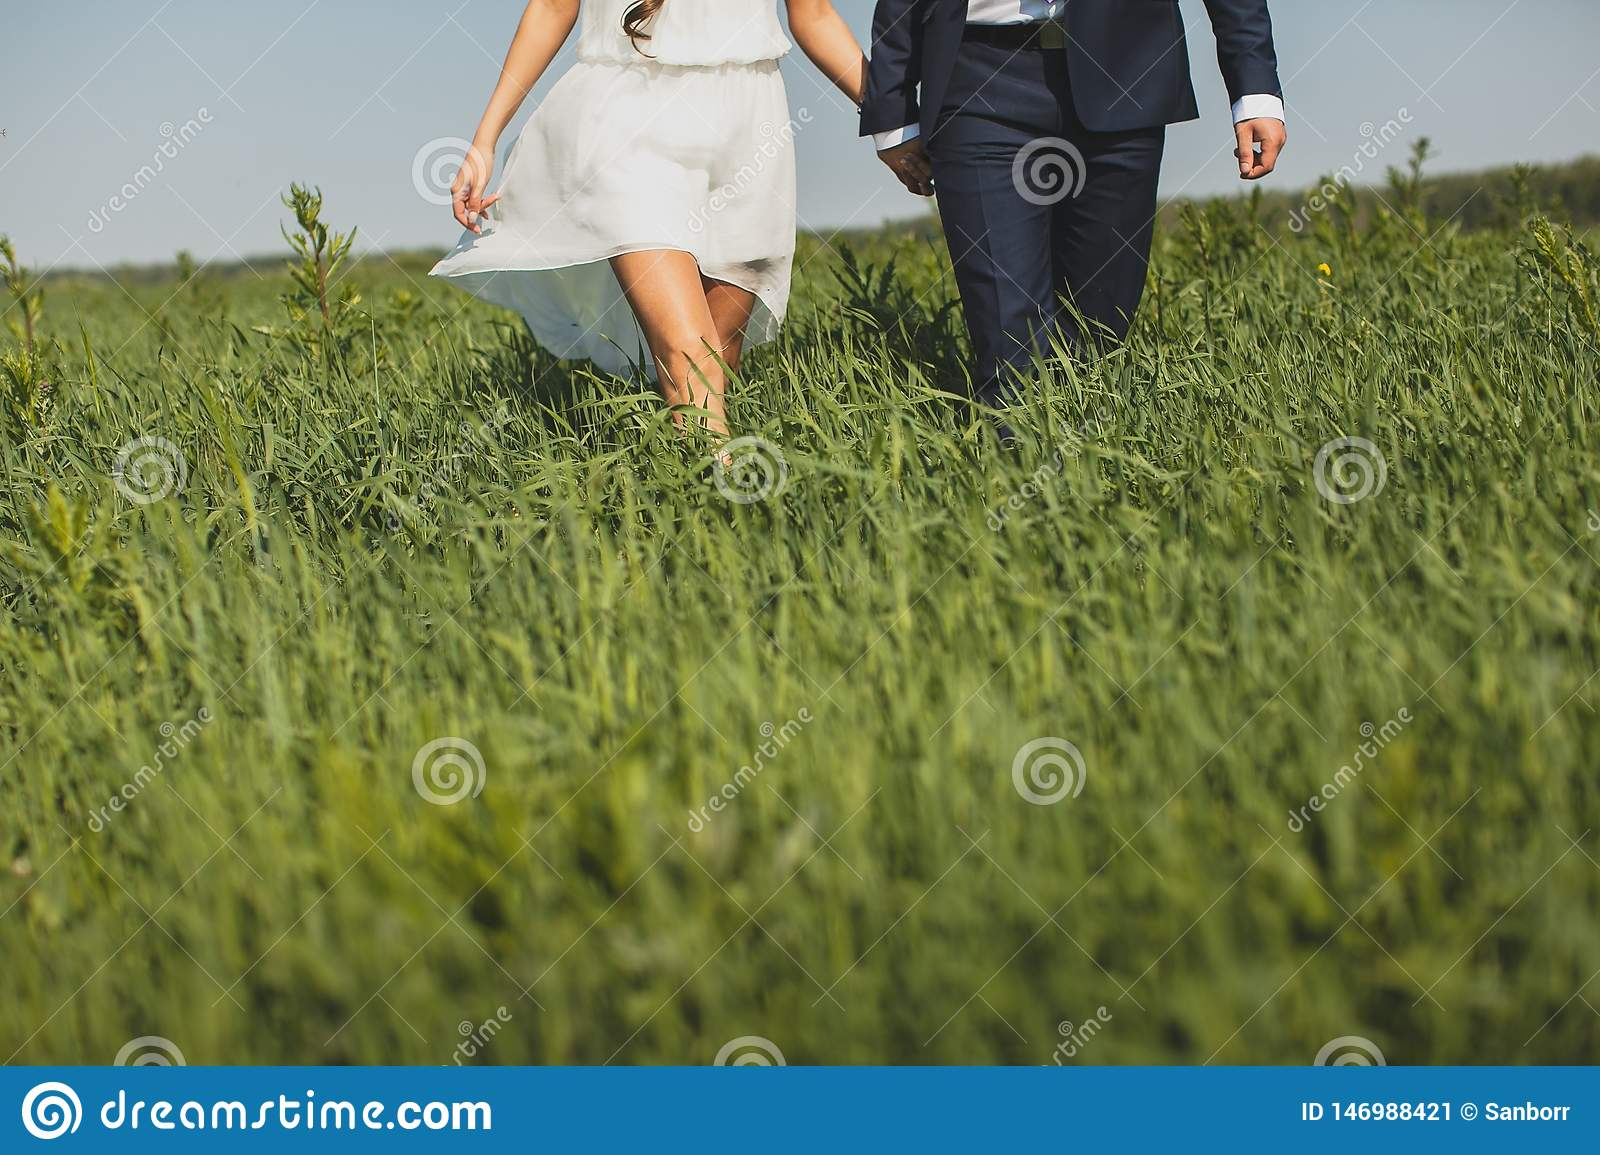 The groom in a classic suit and the bride in a short white light dress, in the tall green grass. A guy and a girl holding hands,